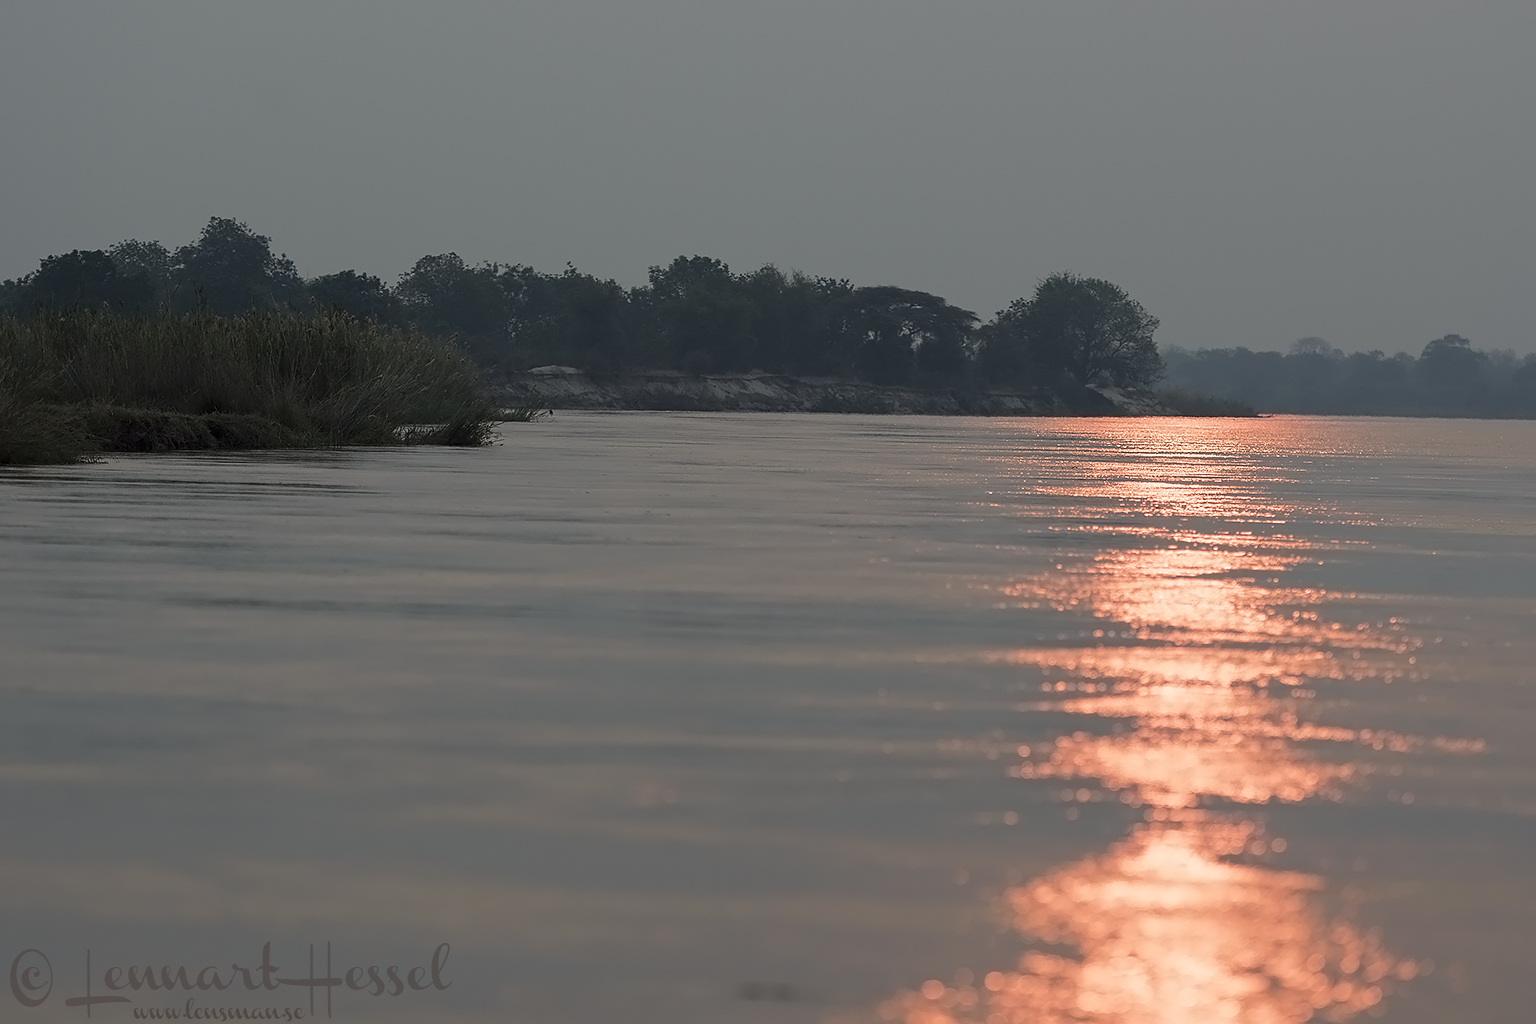 Zambezi river at sunset